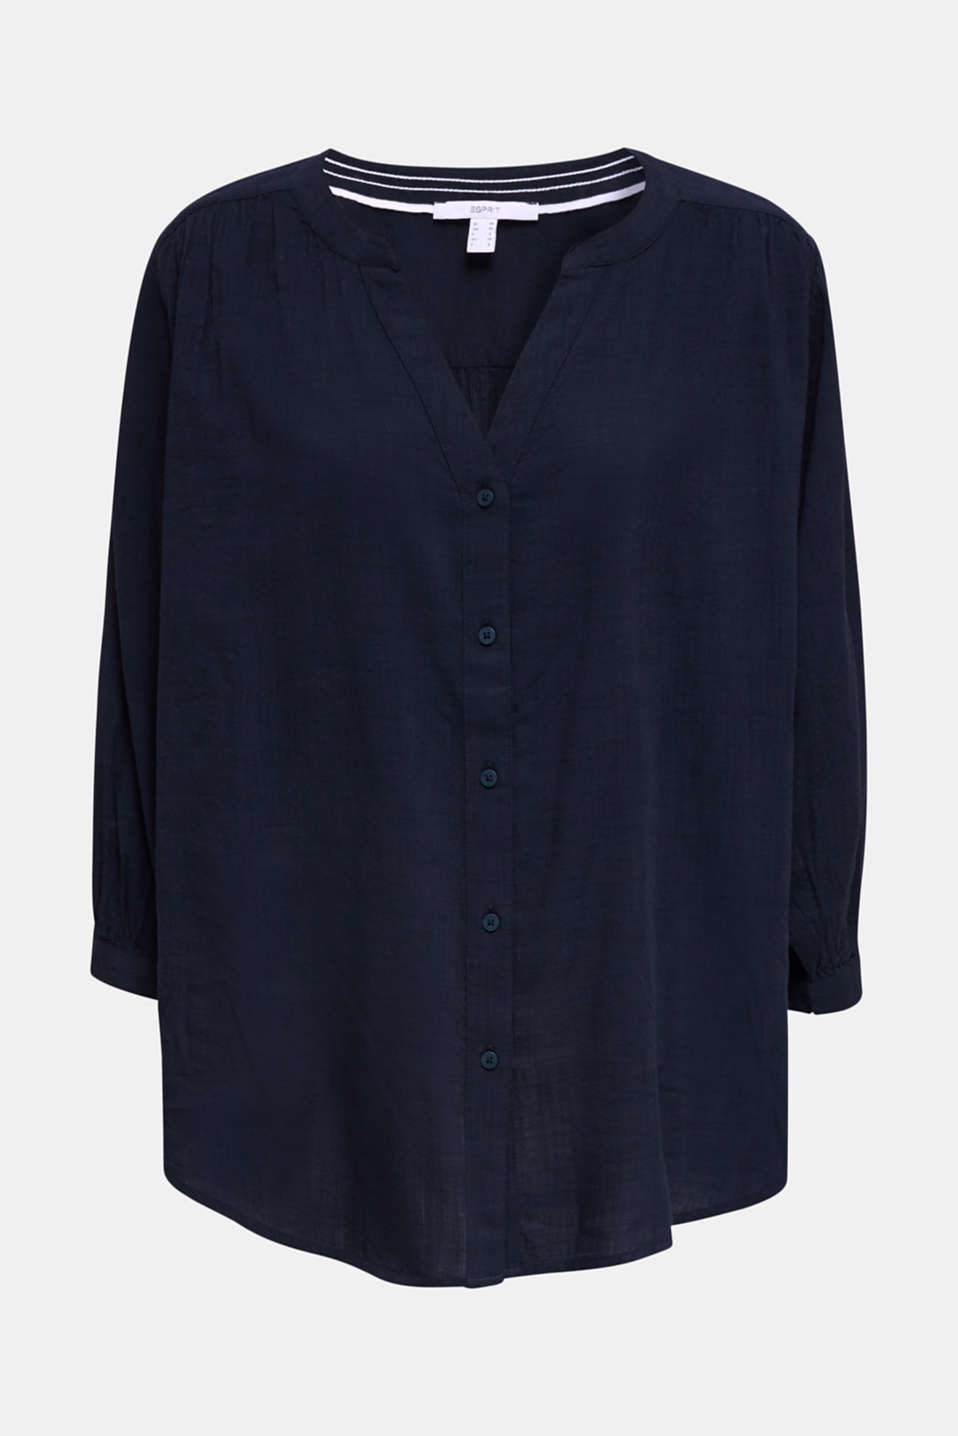 Textured blouse with batwing sleeves, NAVY, detail image number 6